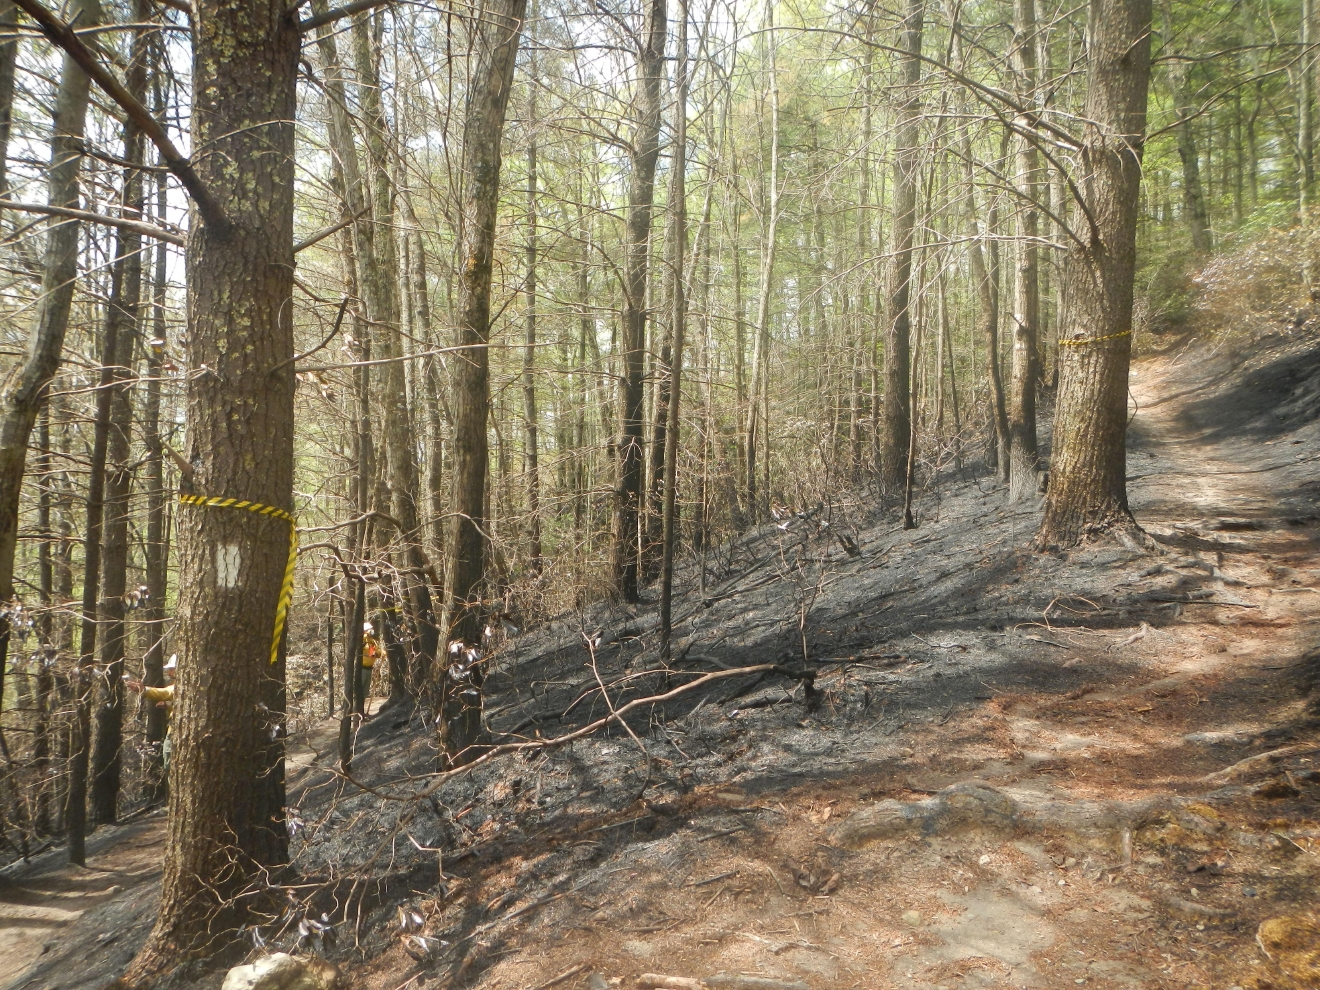 Fire damage on the Appalachian Trail near Hot Springs, N.C. (Photo credit: Appalachian Trail Conservancy)